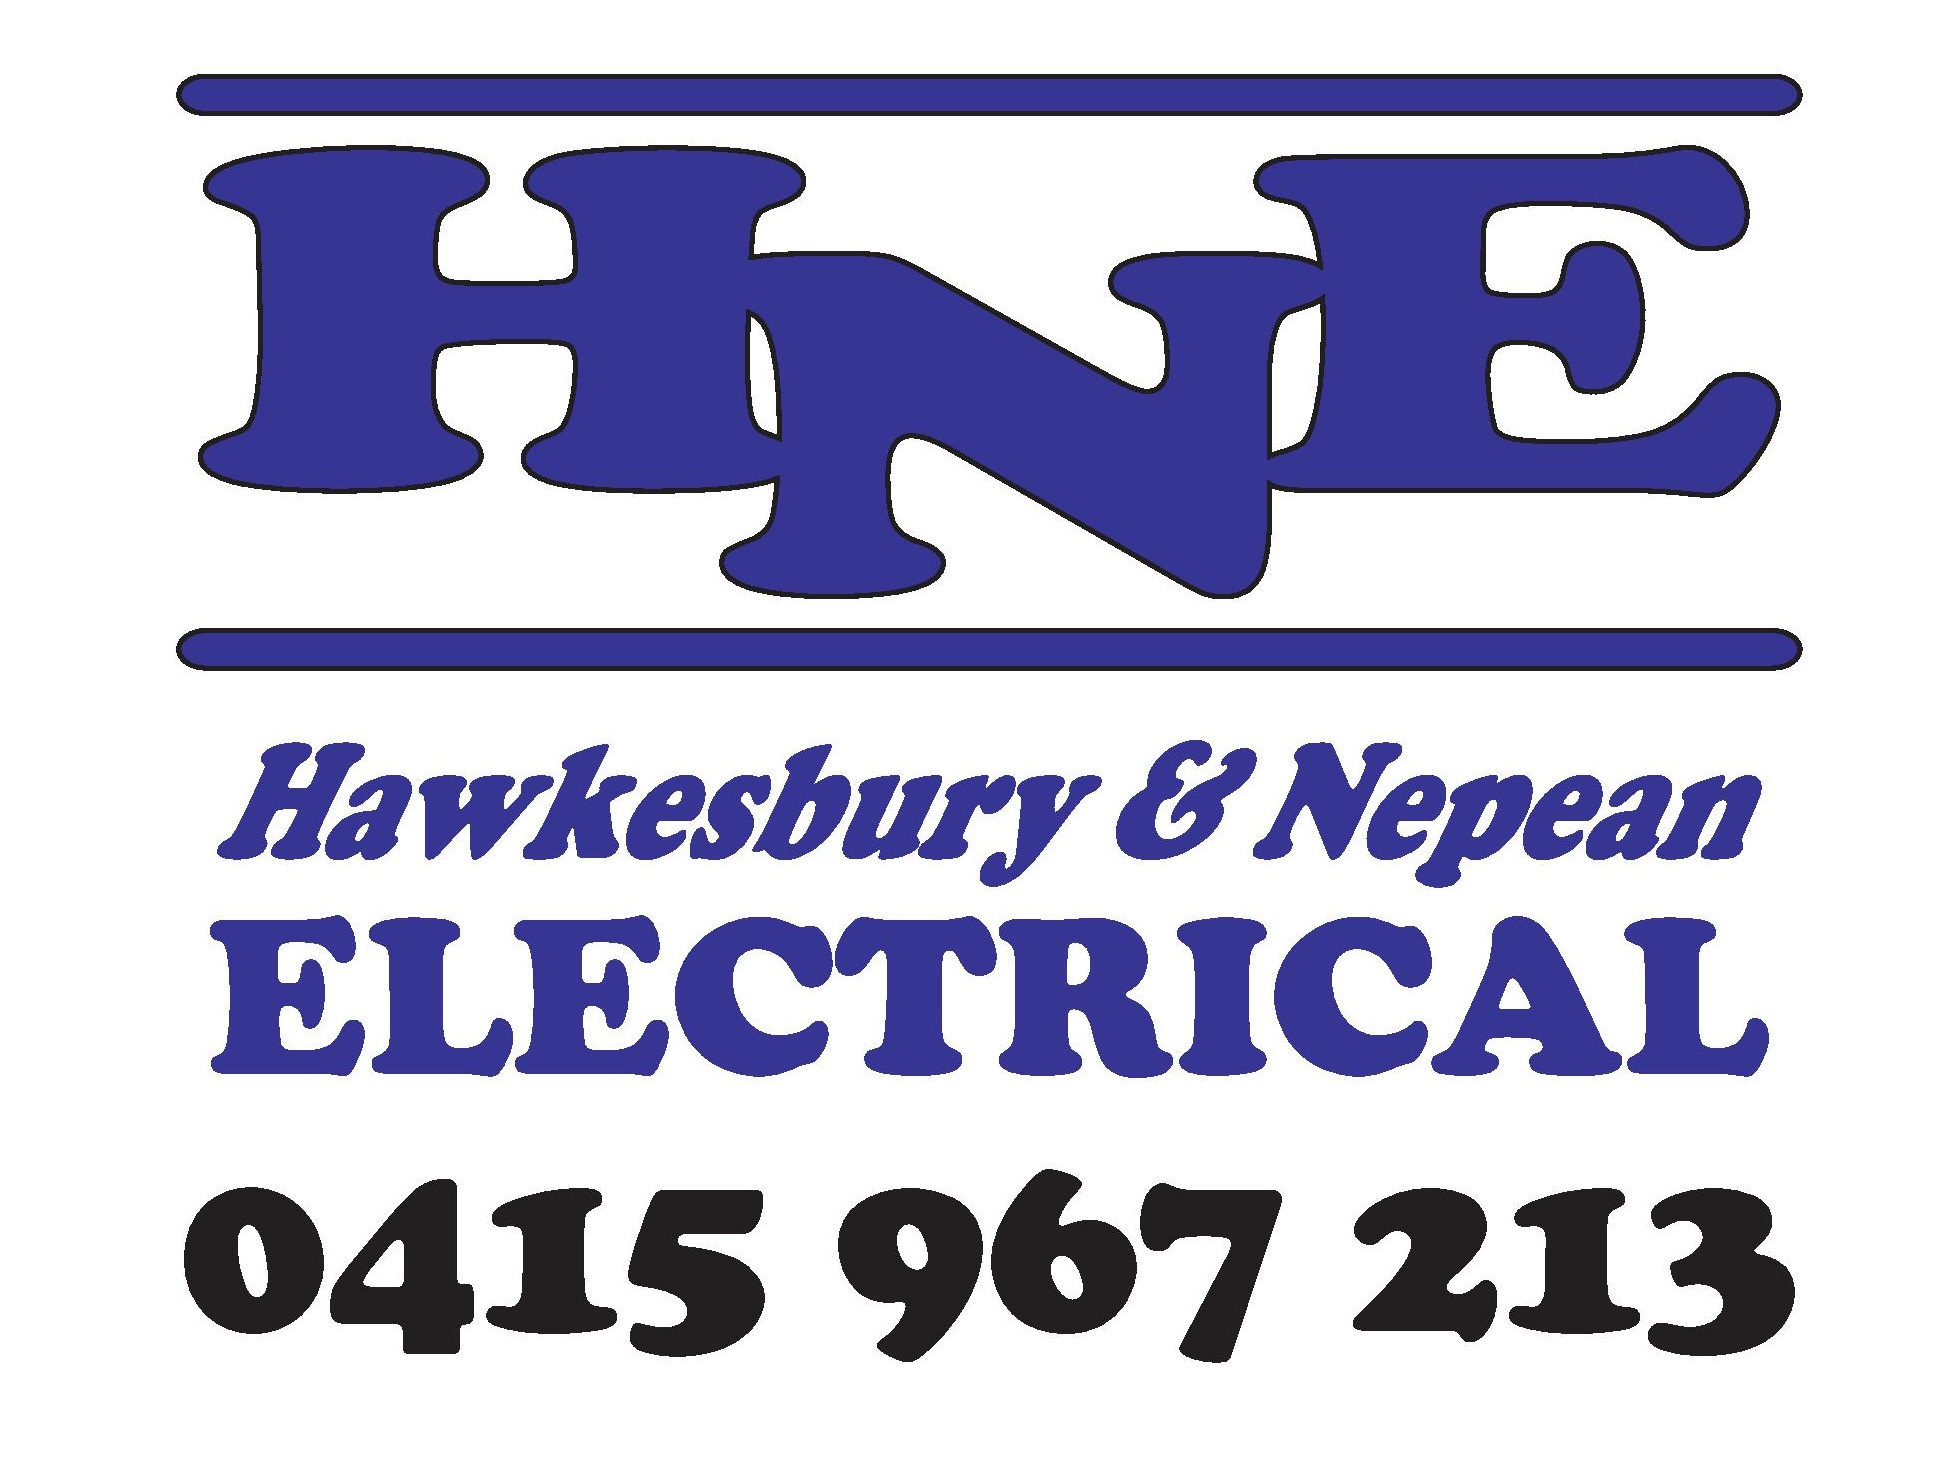 HNE ELECTRICAL